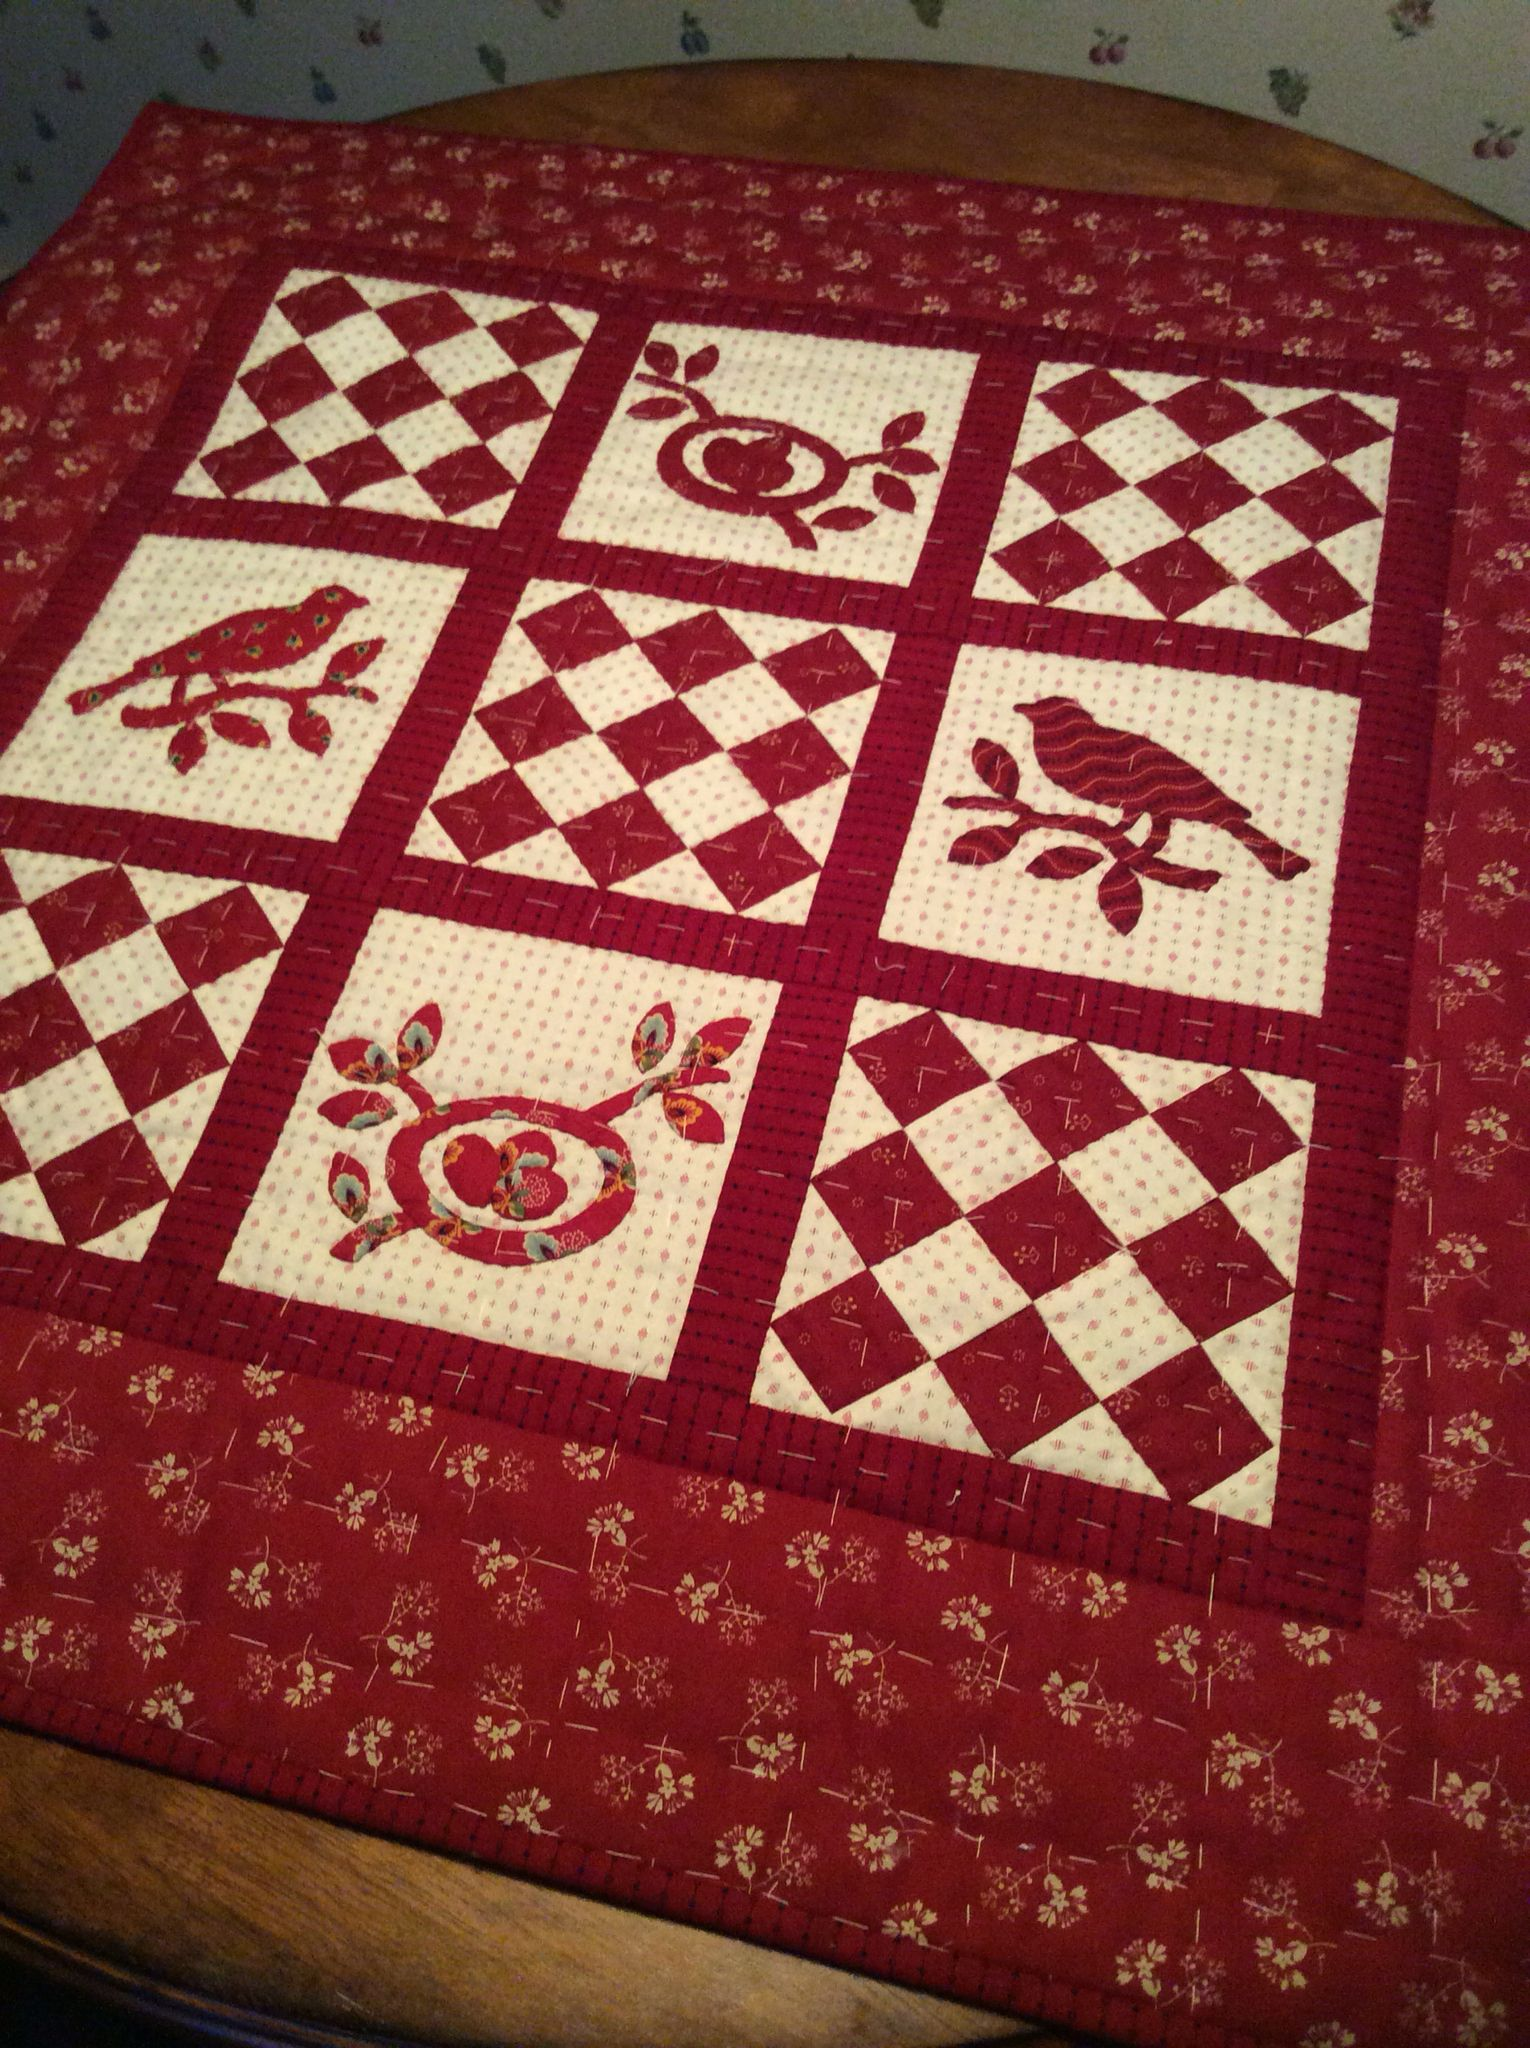 i am working on my jo morton quilt from her through the seasons book